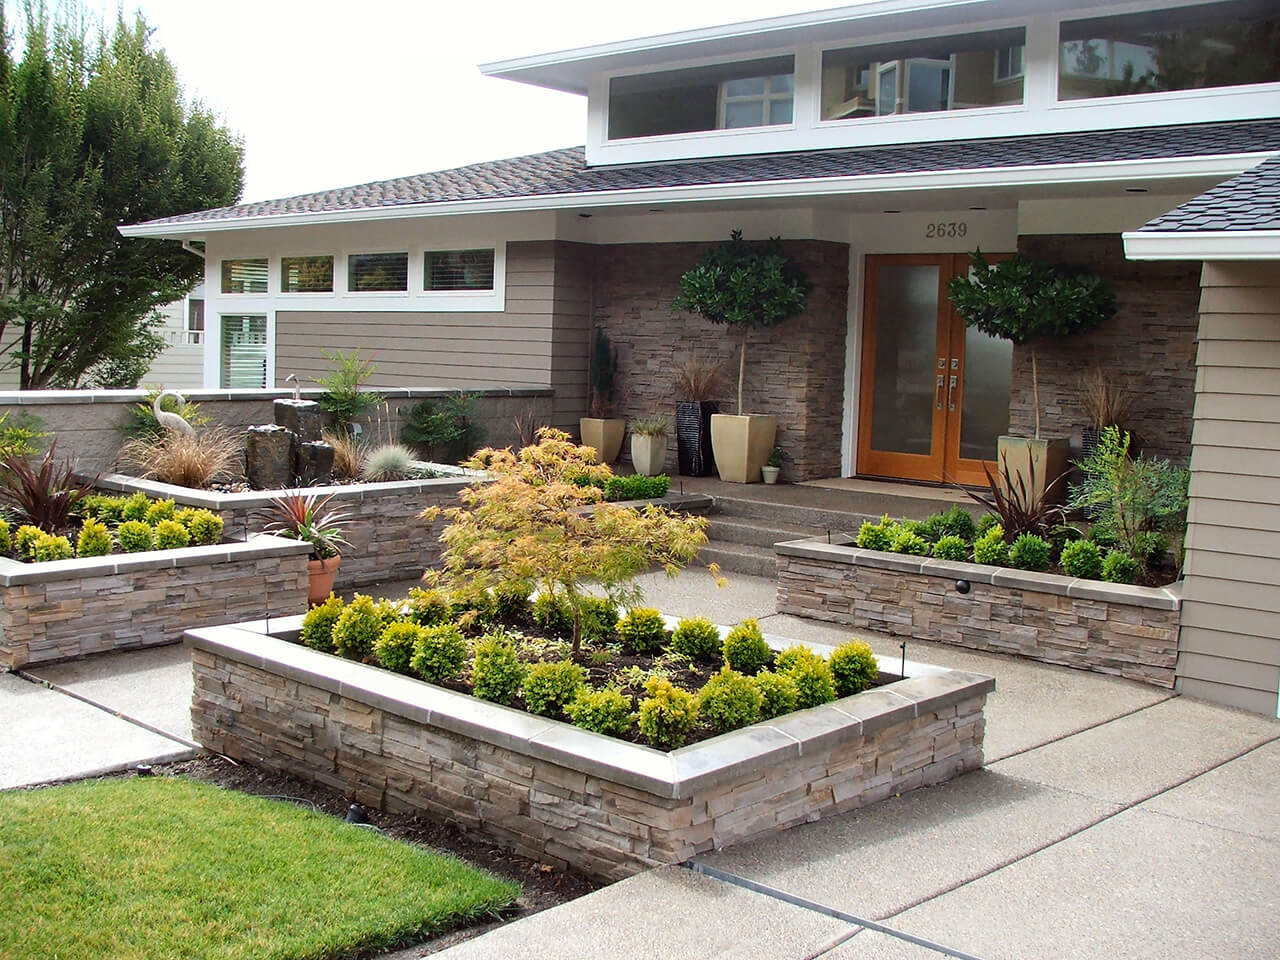 50 best front yard landscaping ideas and garden designs for Pictures of front yard landscapes